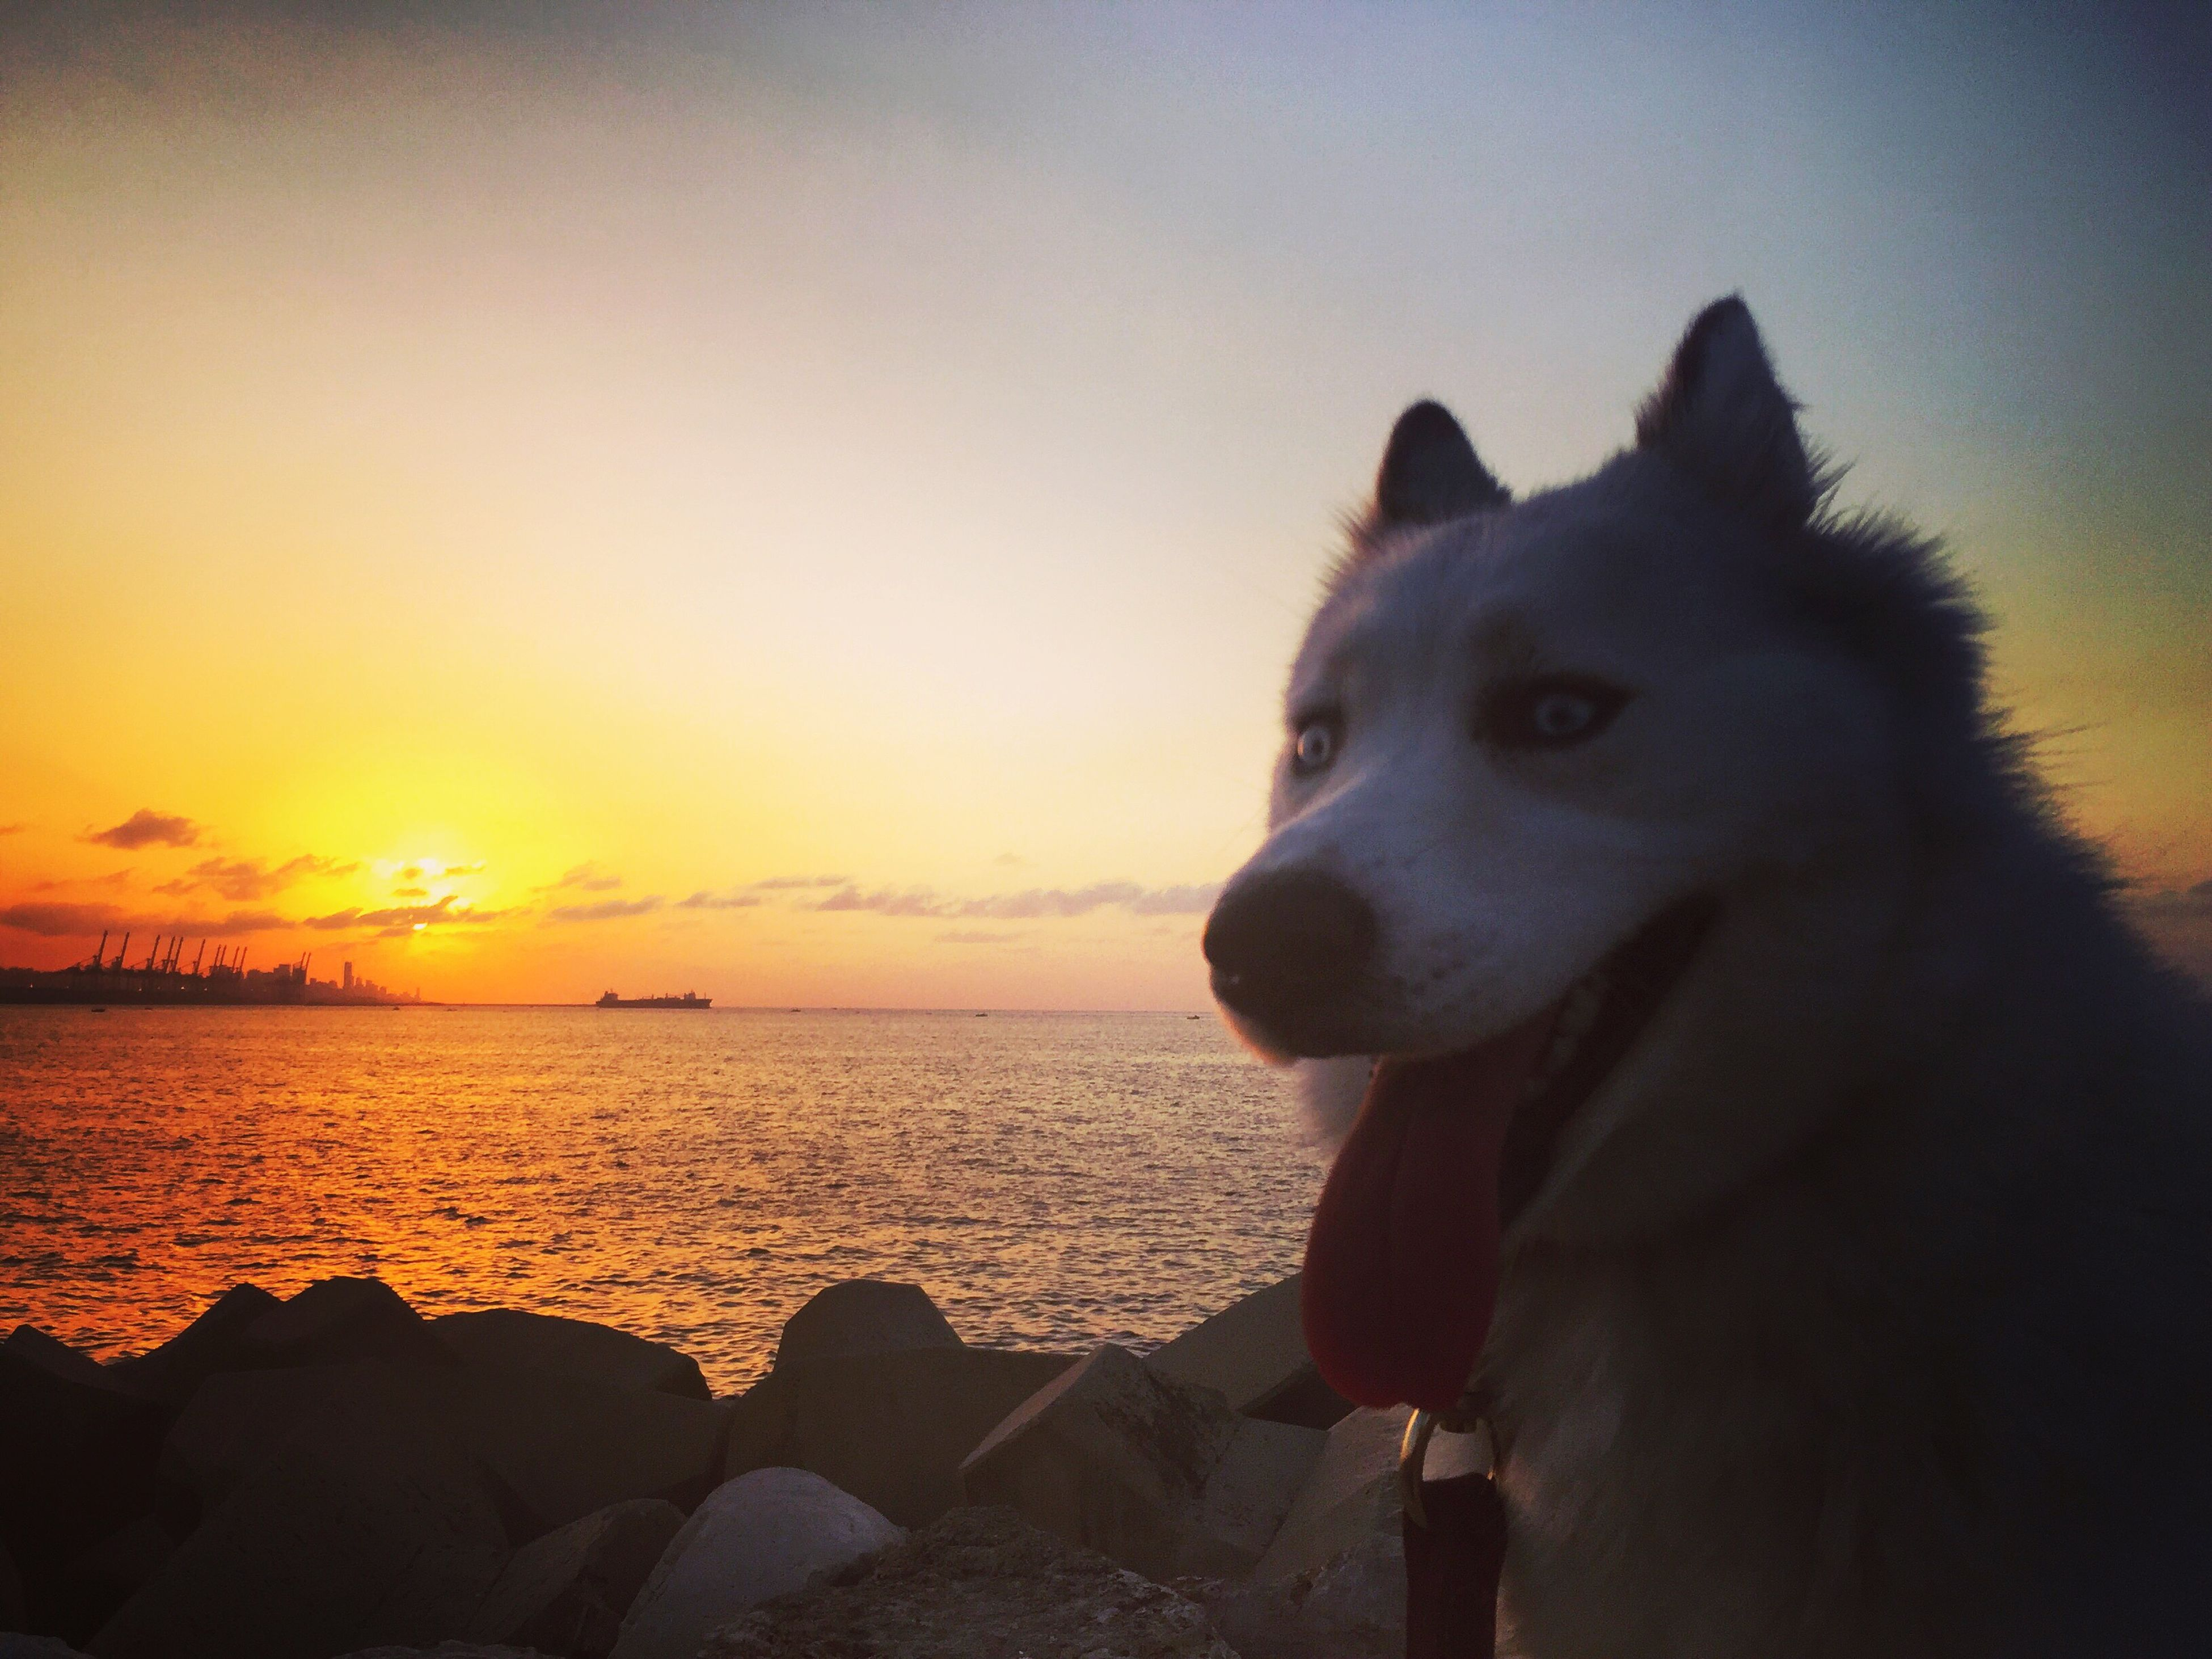 sunset, sea, one animal, water, pets, sky, animal themes, horizon over water, domestic animals, dog, mammal, beach, silhouette, nature, scenics, beauty in nature, tranquility, tranquil scene, shore, sitting